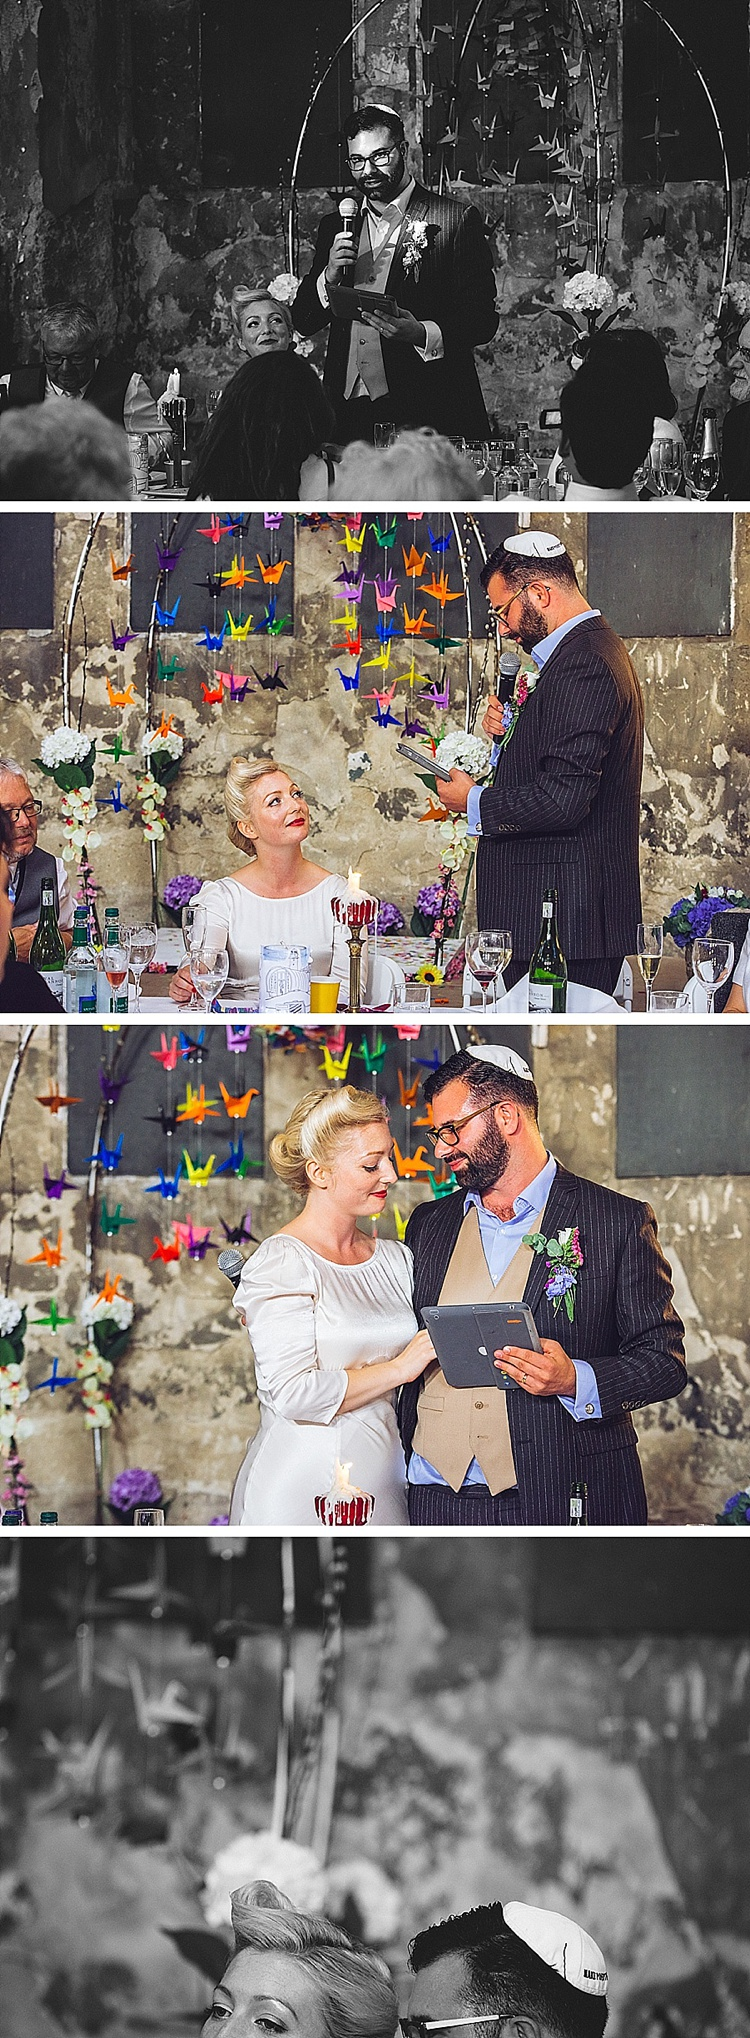 Colourful London wedding at Asylum Arts and The Big Red Pizza Bus_0127